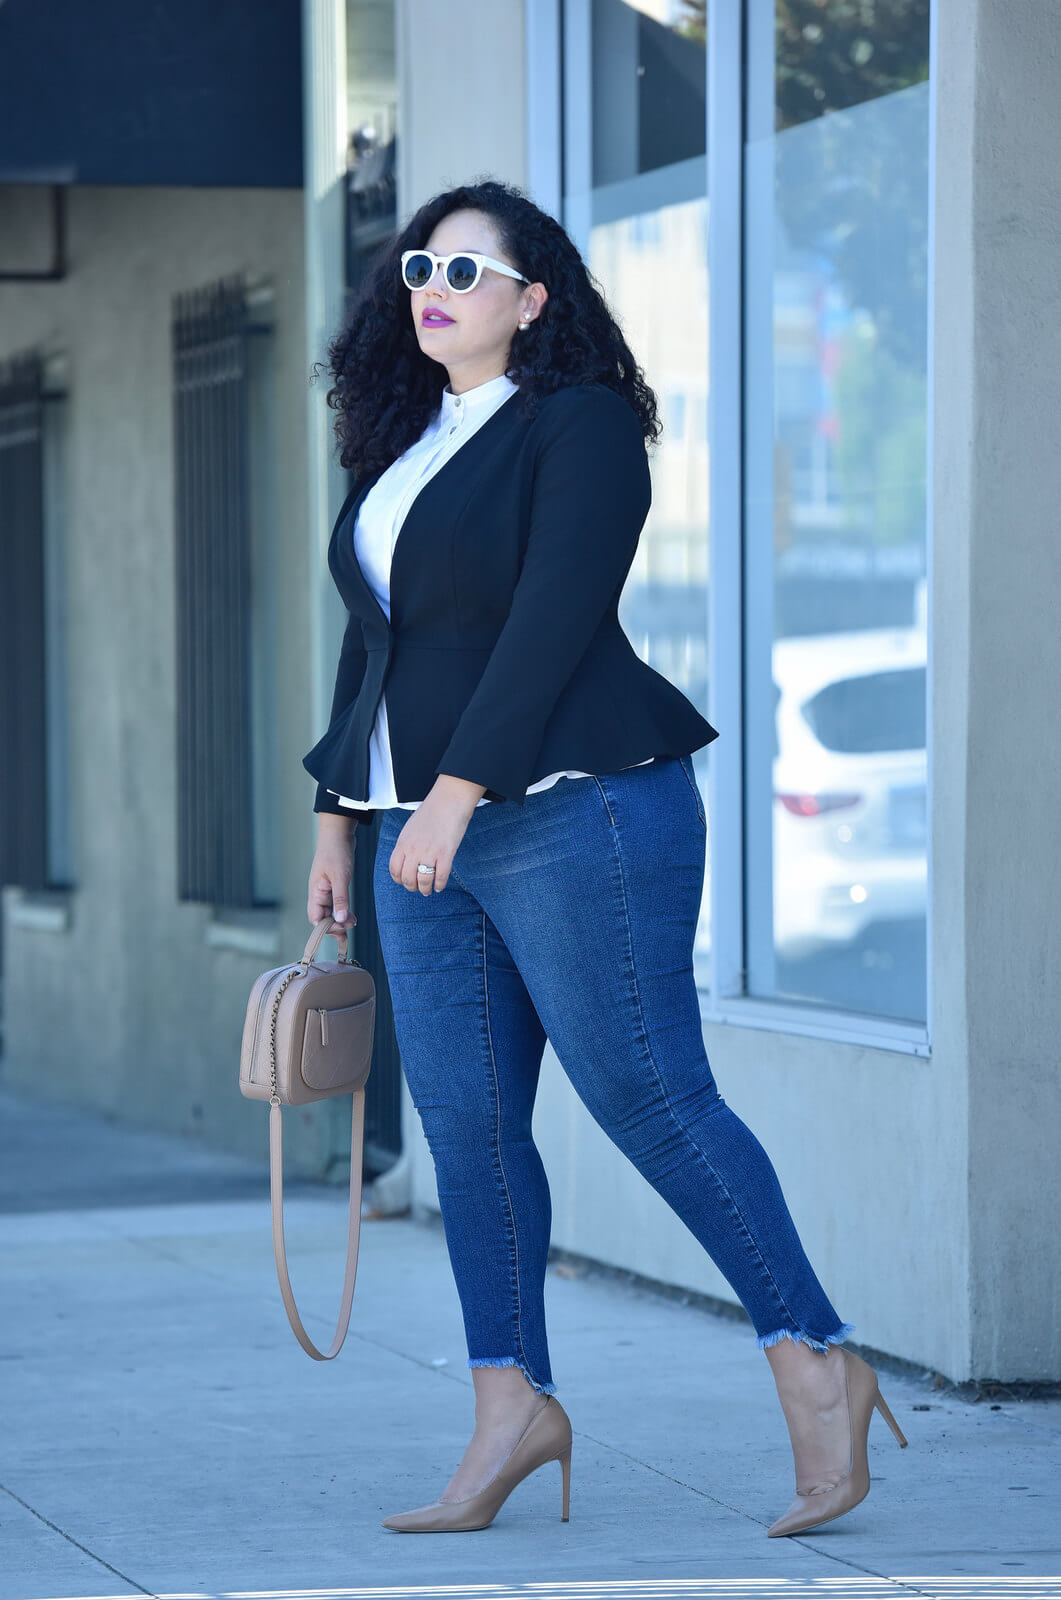 Girl With Curves Fall 2017 Collection peplum blazer, step hem skinny jeans, peplum top, plus size clothing, plus size fashion, curvy fashion, curvy style, peplum, Girl With Curves collection x Dia & Co, via @GirlWithCurves